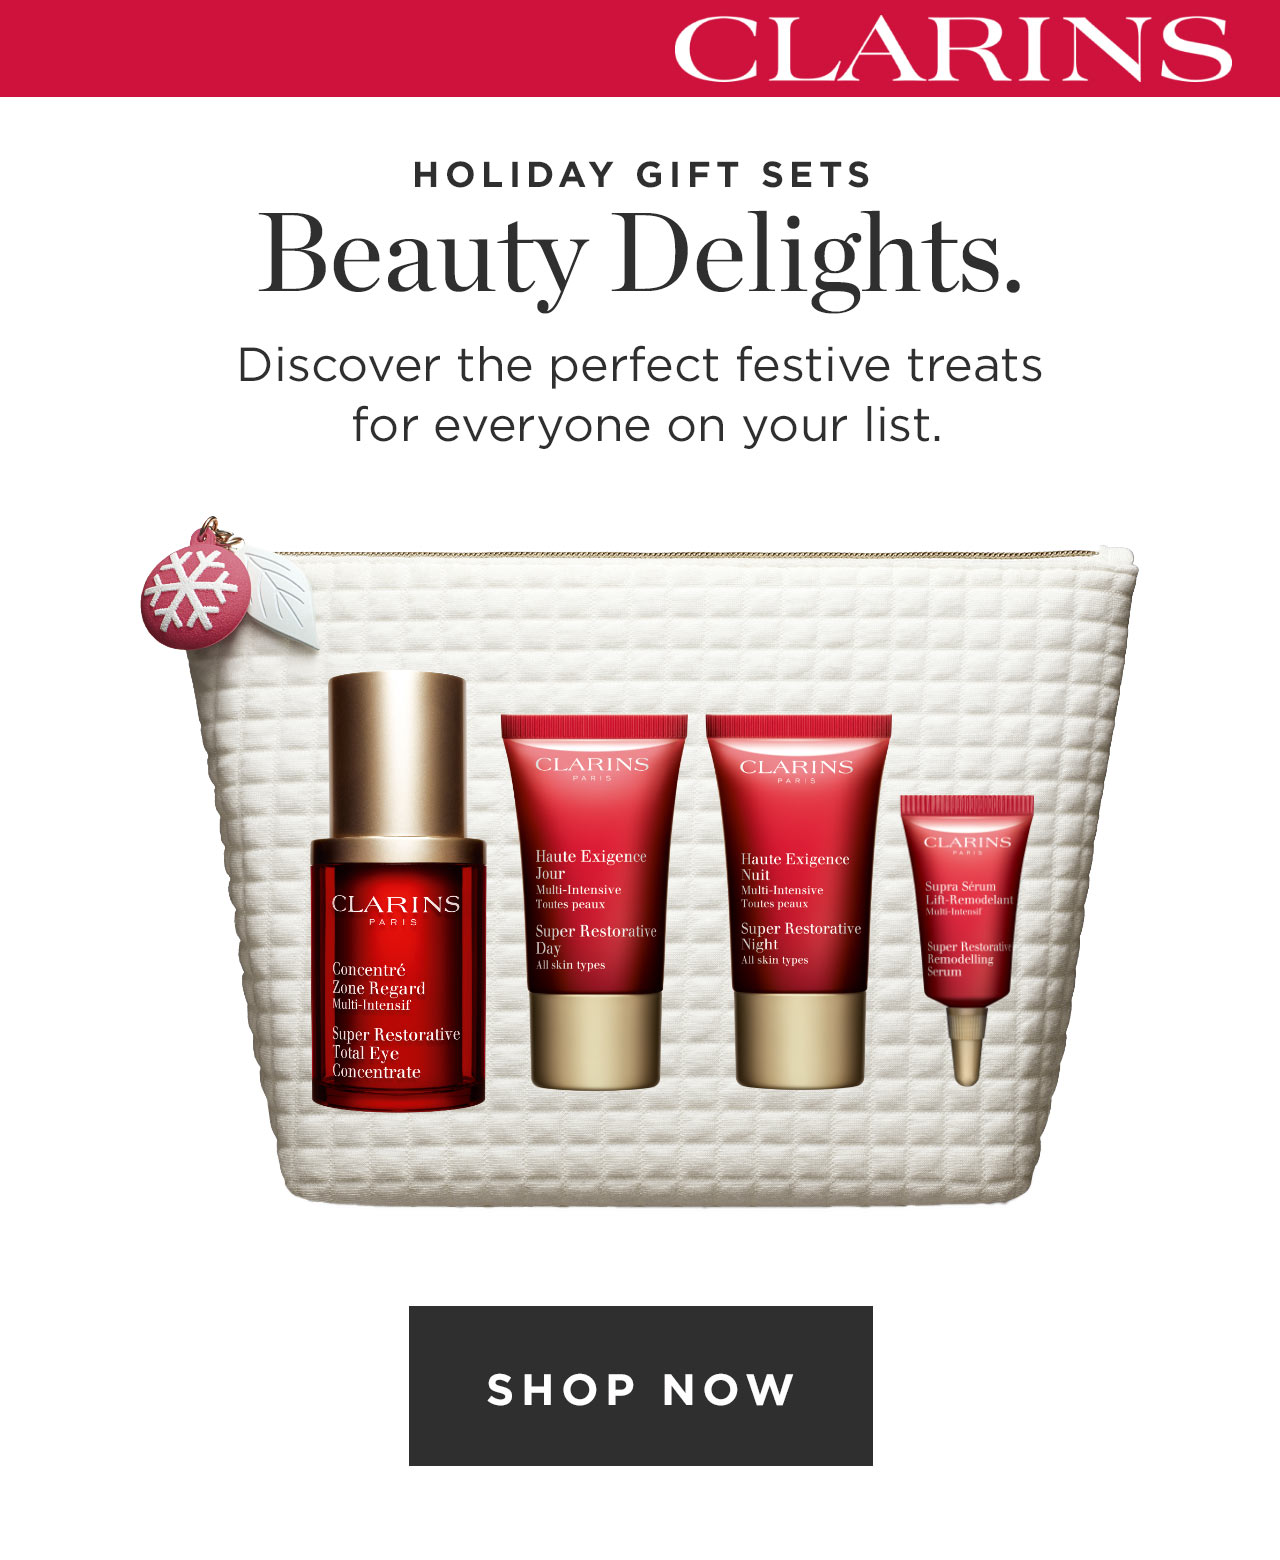 Clarins Beauty Delights